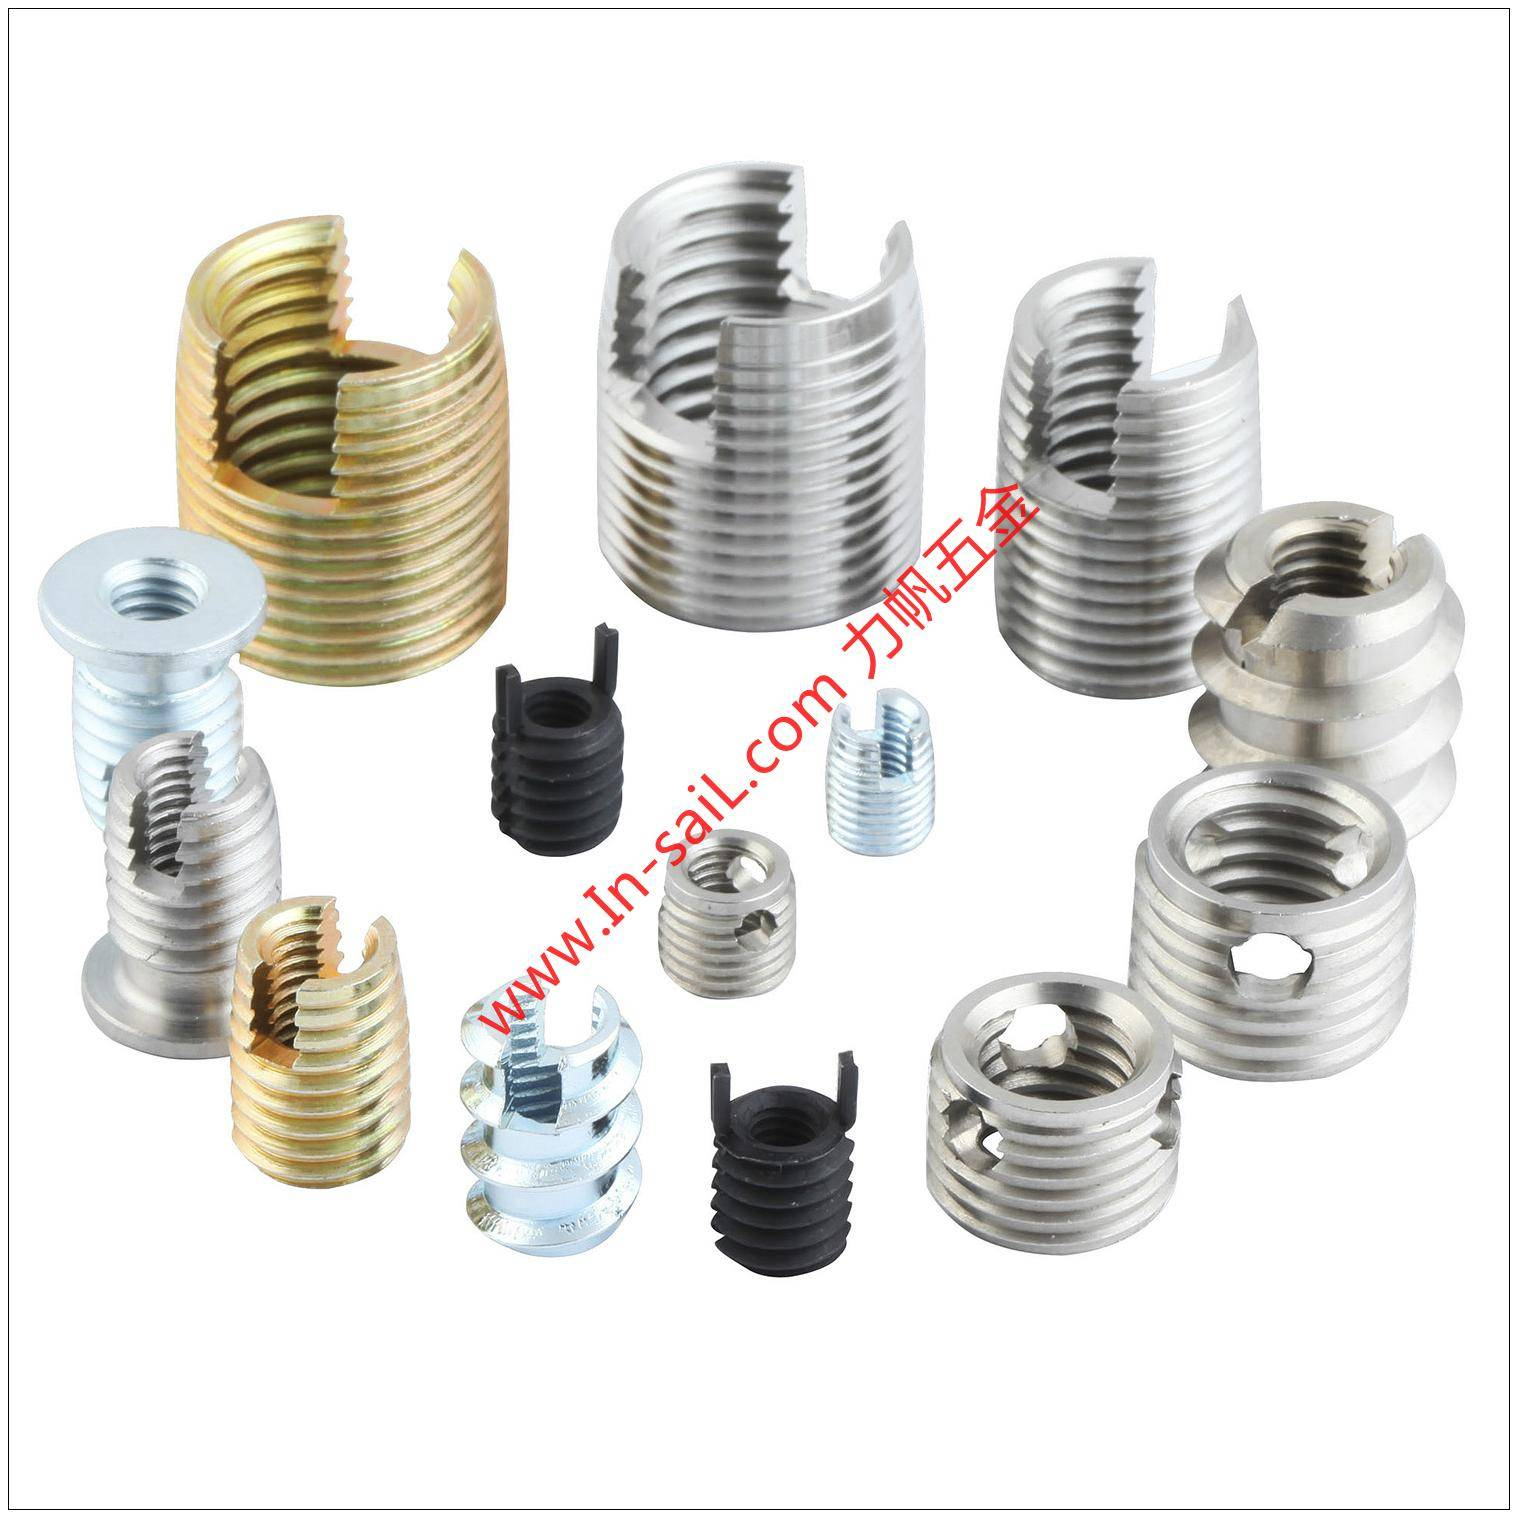 Thread Inserts for Metal